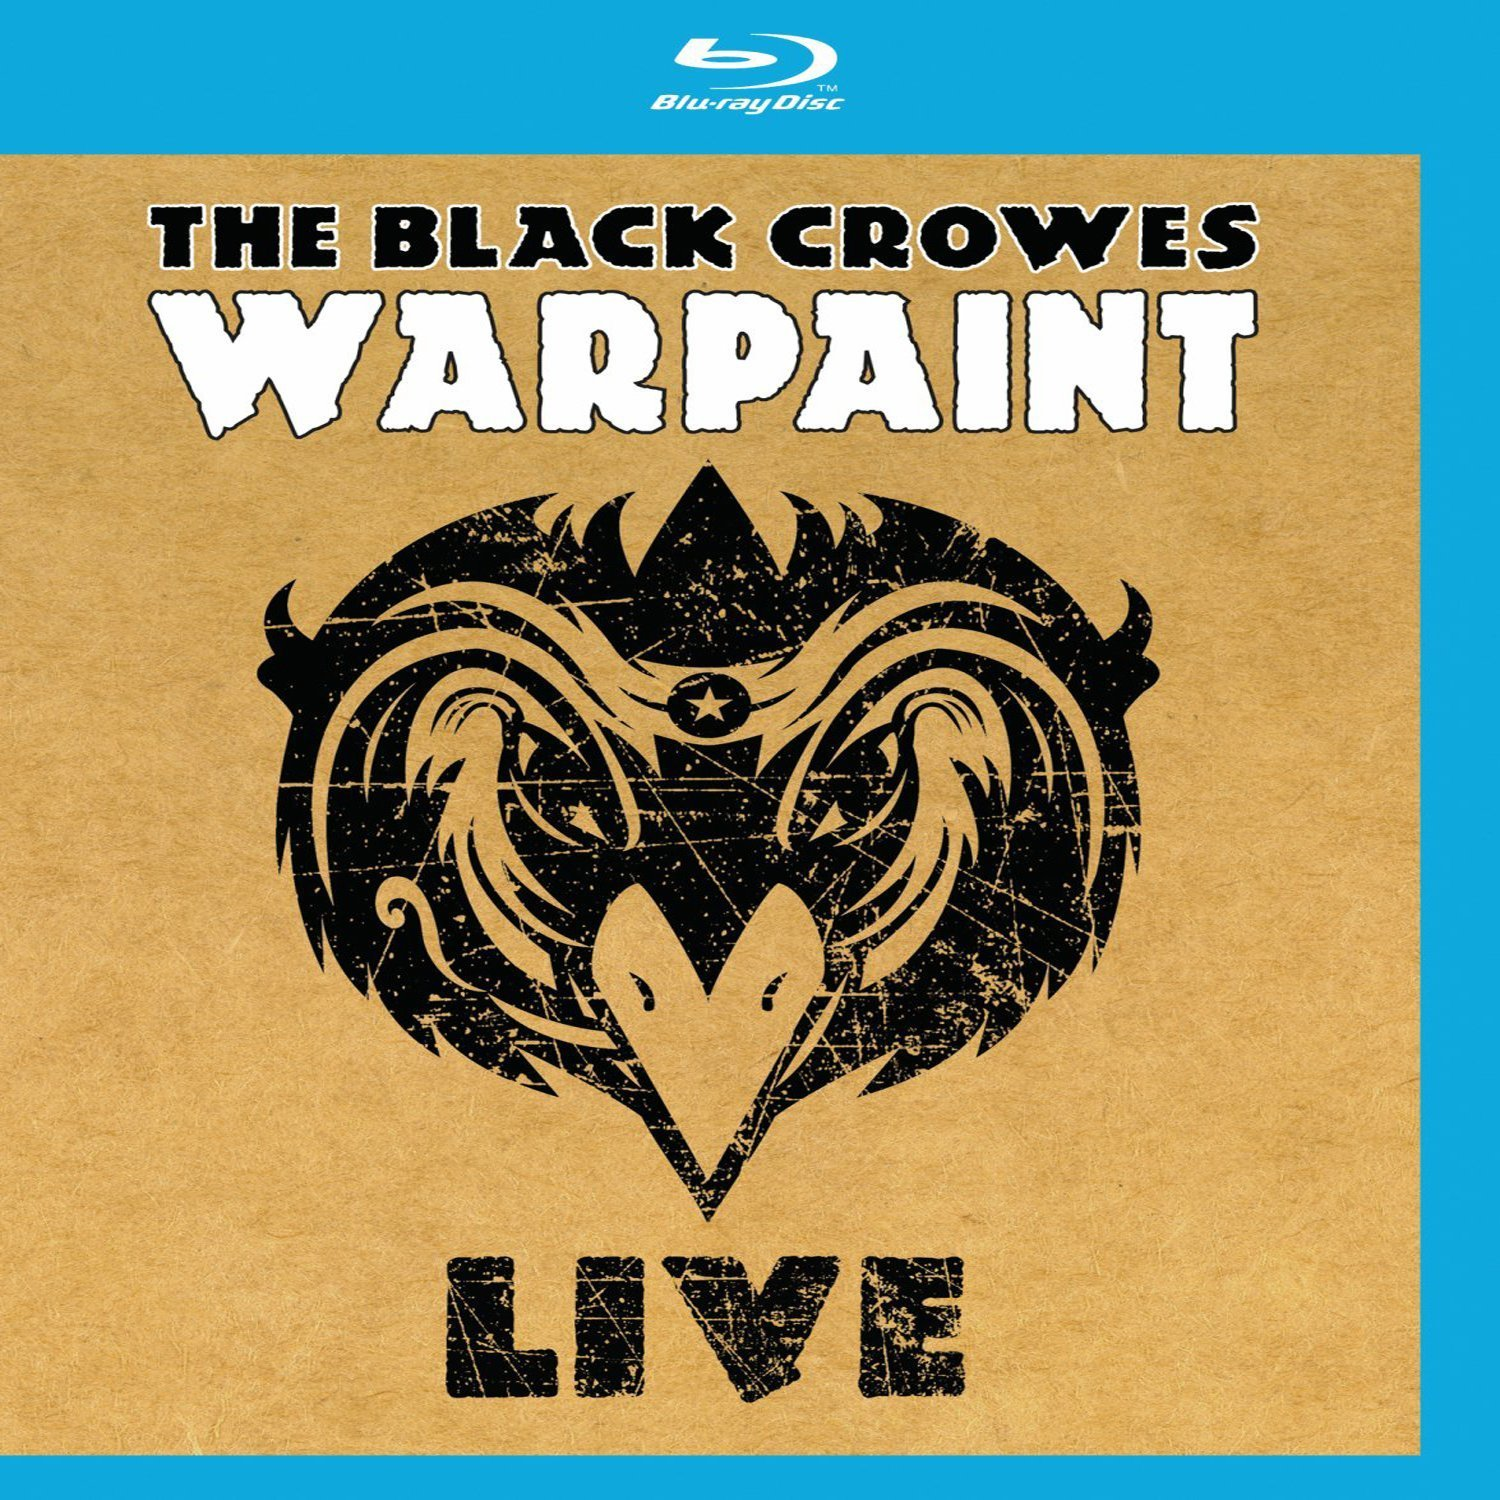 Blu-ray : The Black Crowes - The Black Crowes: Warpaint: Live